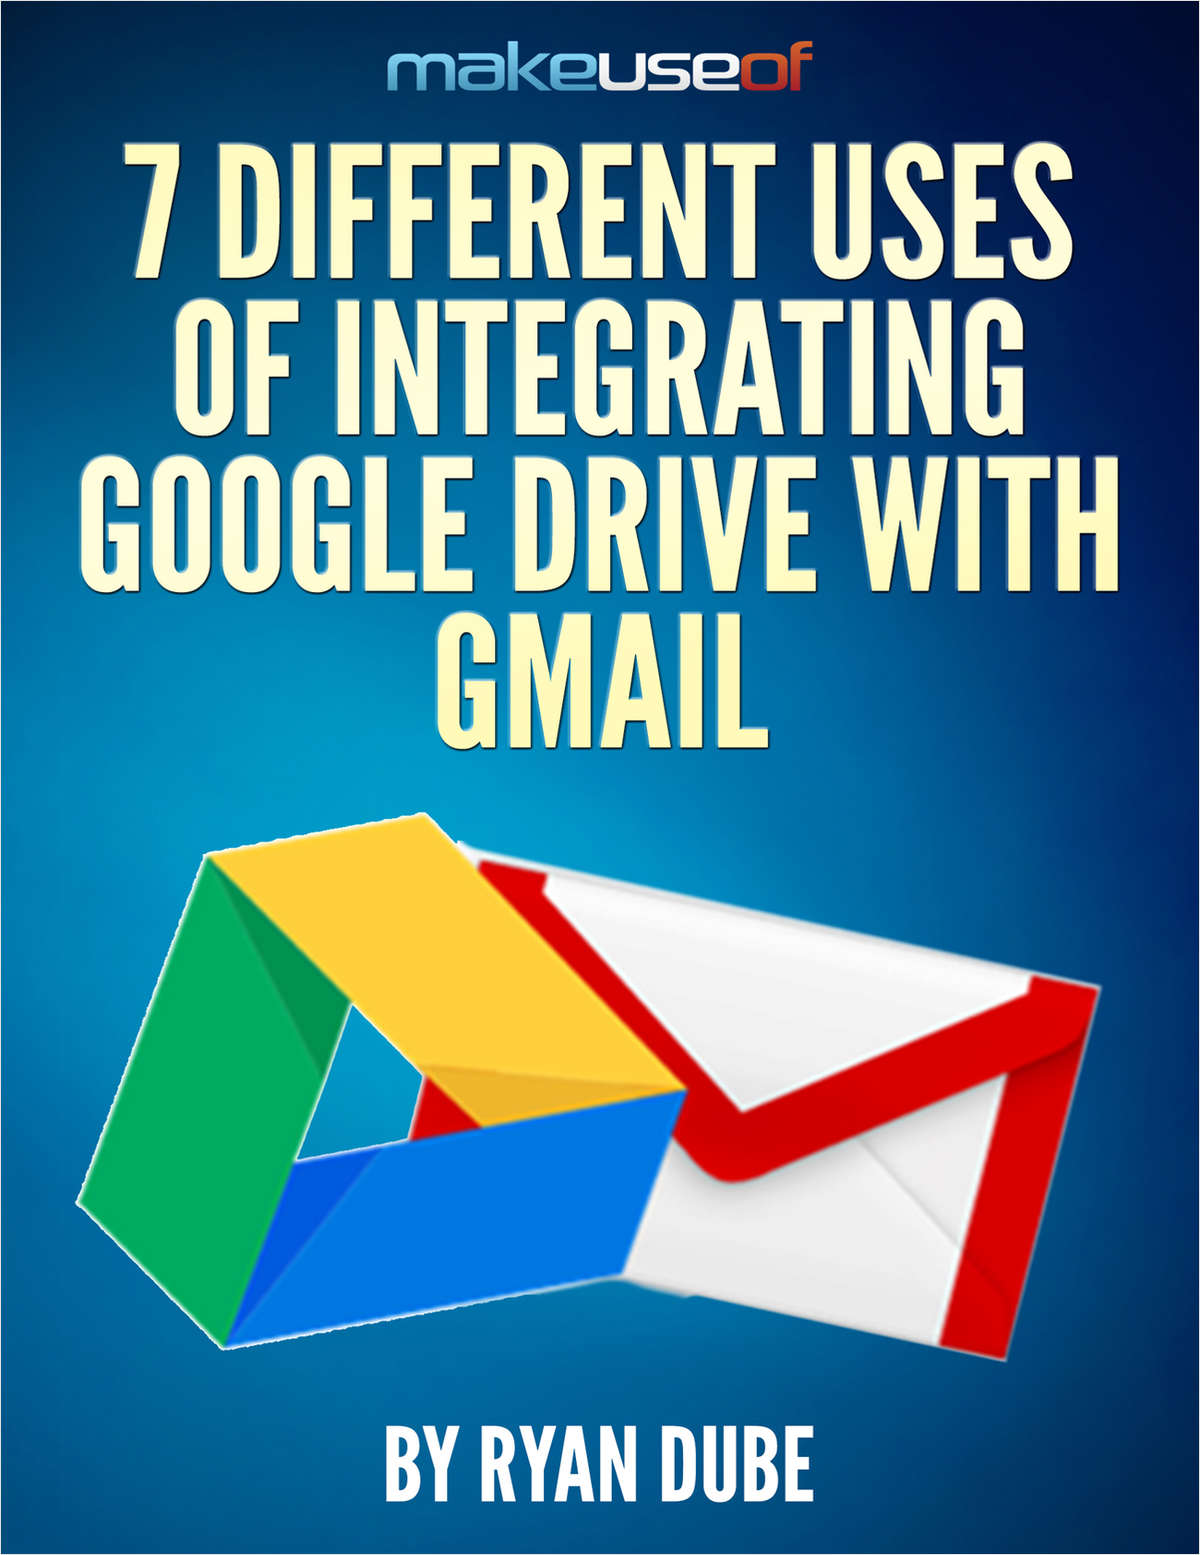 7 Different Uses Of Integrating Google Drive With Gmail